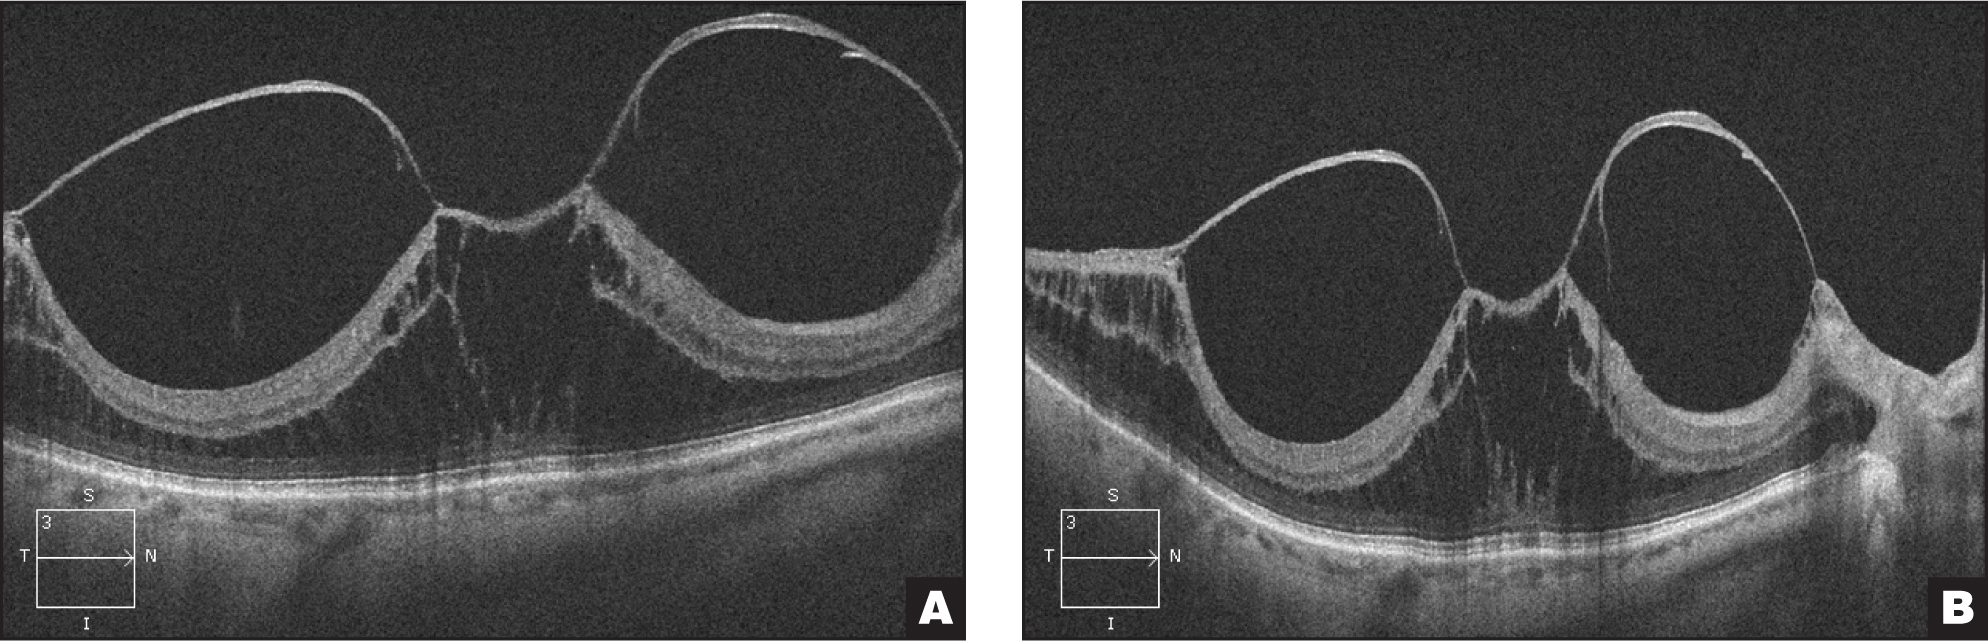 (A) This patient had retinal detachment in the contralateral eye and has a thick posterior hyaloid with a central 878 μm adhesion diameter. Multiple adhesions can be seen in the peripheral macula and nerve head. (B) At 1 week, there was no improvement on OCT. This patient was lost to follow-up.